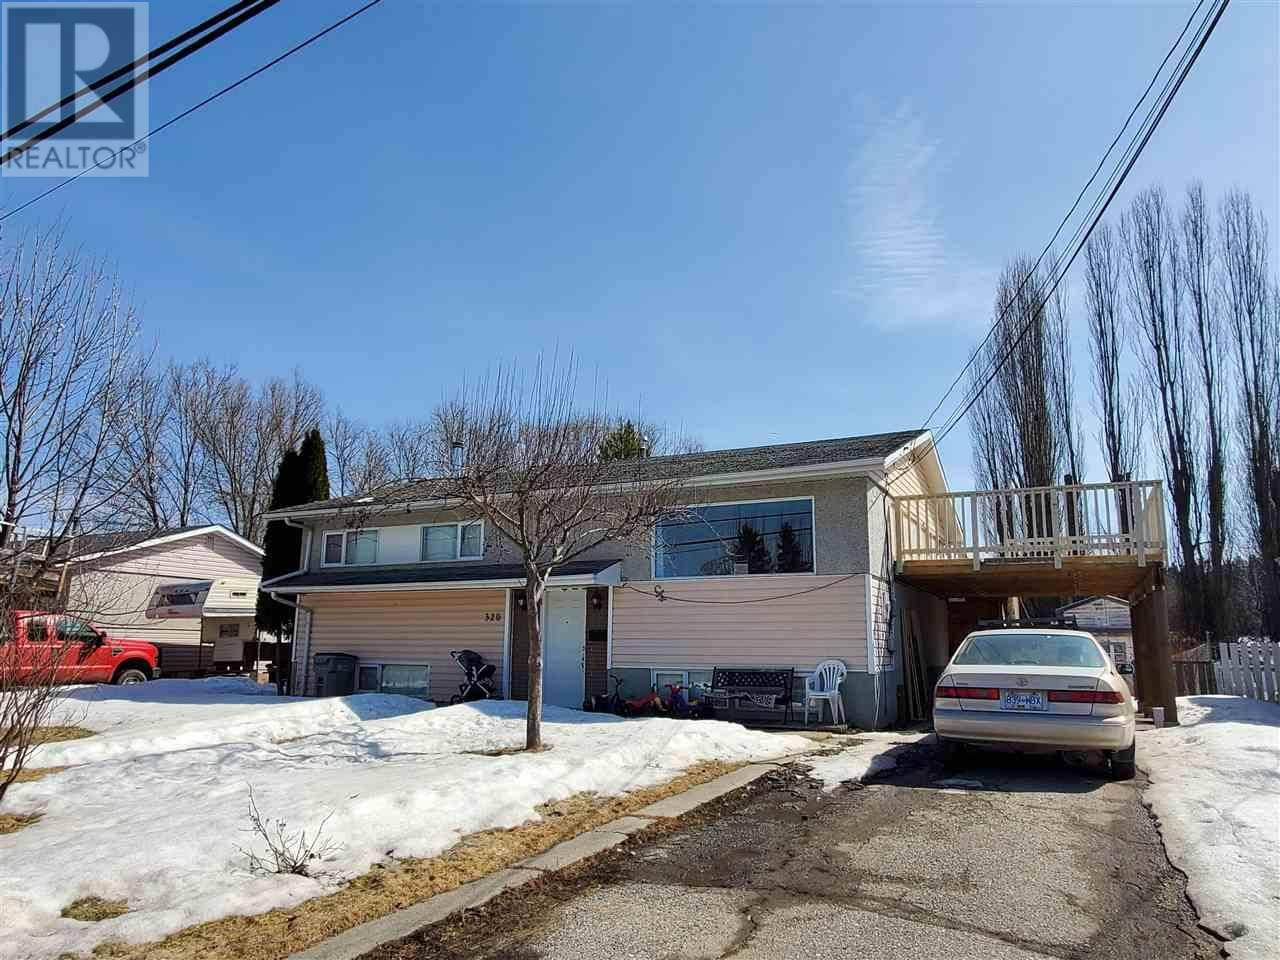 House for sale at 320 Wilkinson St Quesnel British Columbia - MLS: R2449873